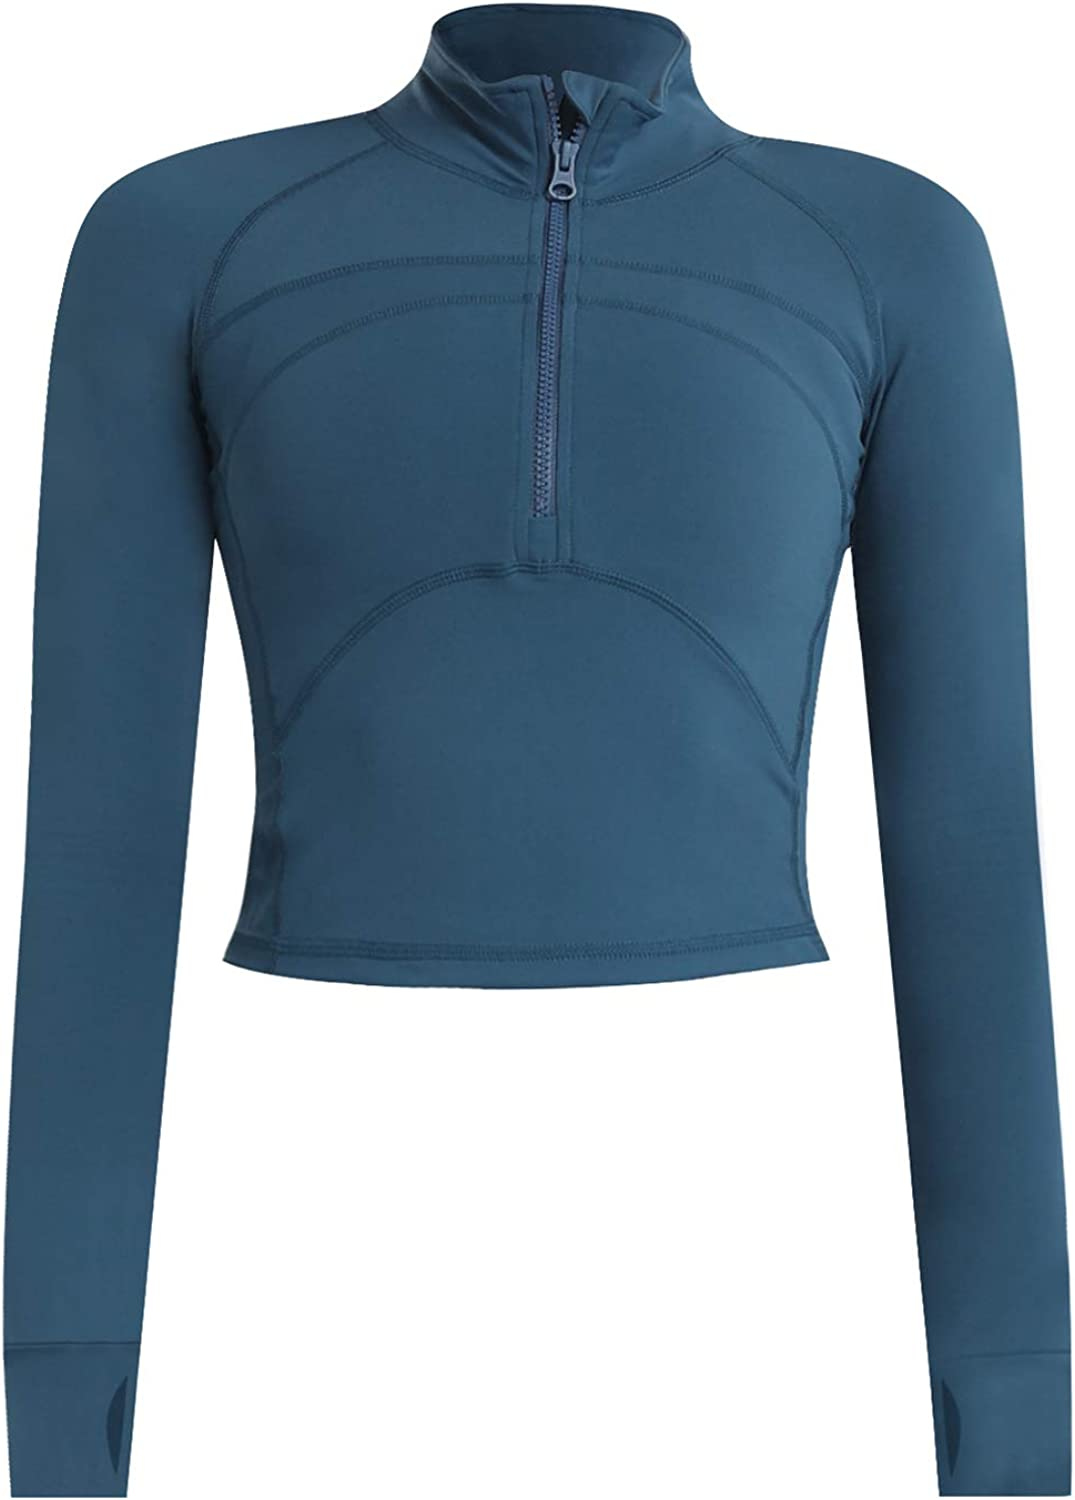 NEW Outlet SALE Specific Heart Women's Yoga Jacket 1 2 Flee Zip Pullover Thermal